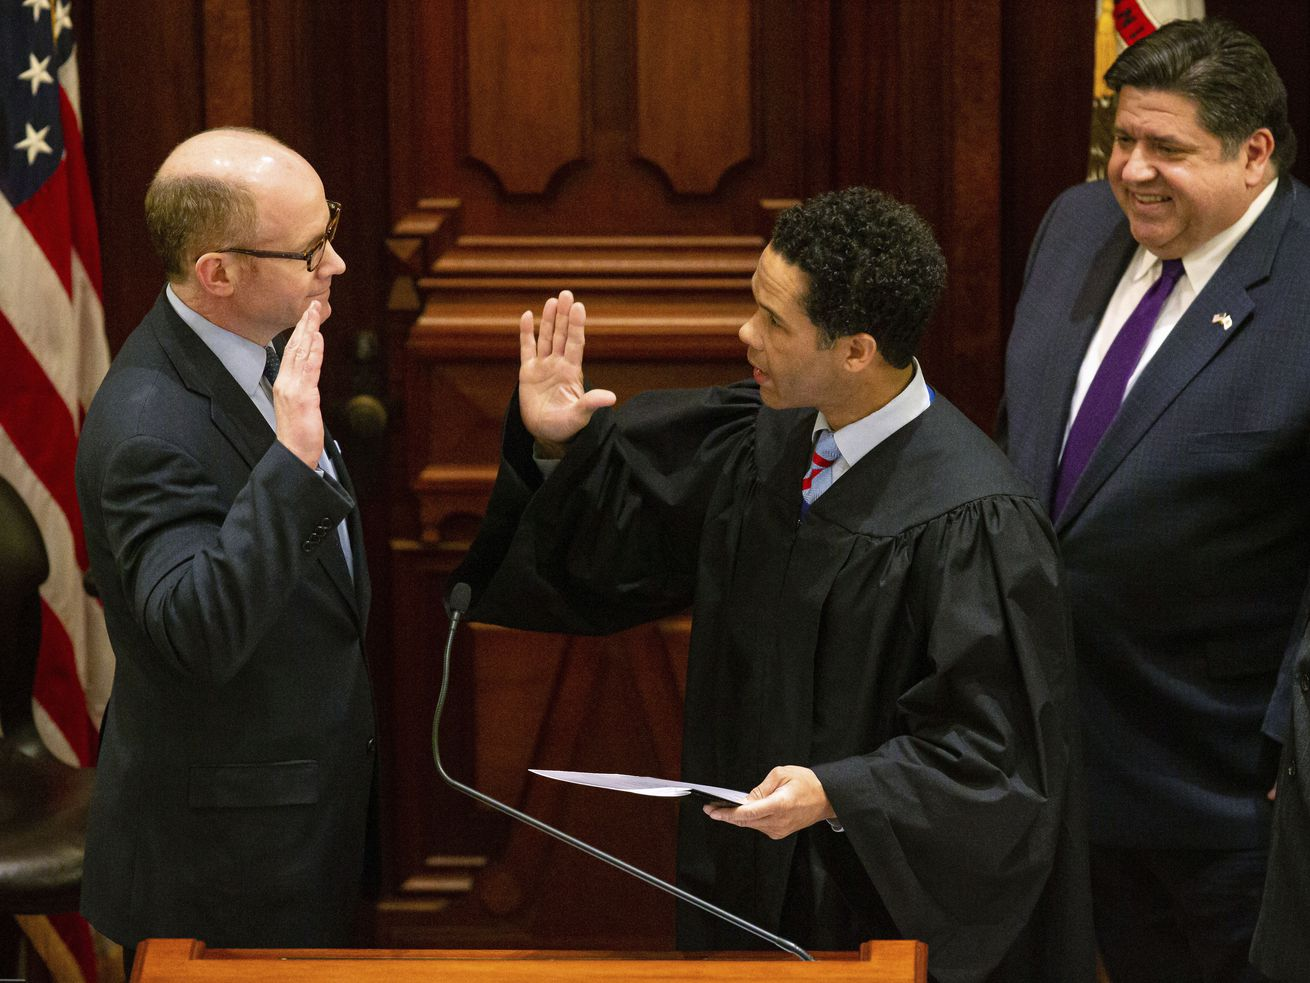 Don Harmon takes the oath of office